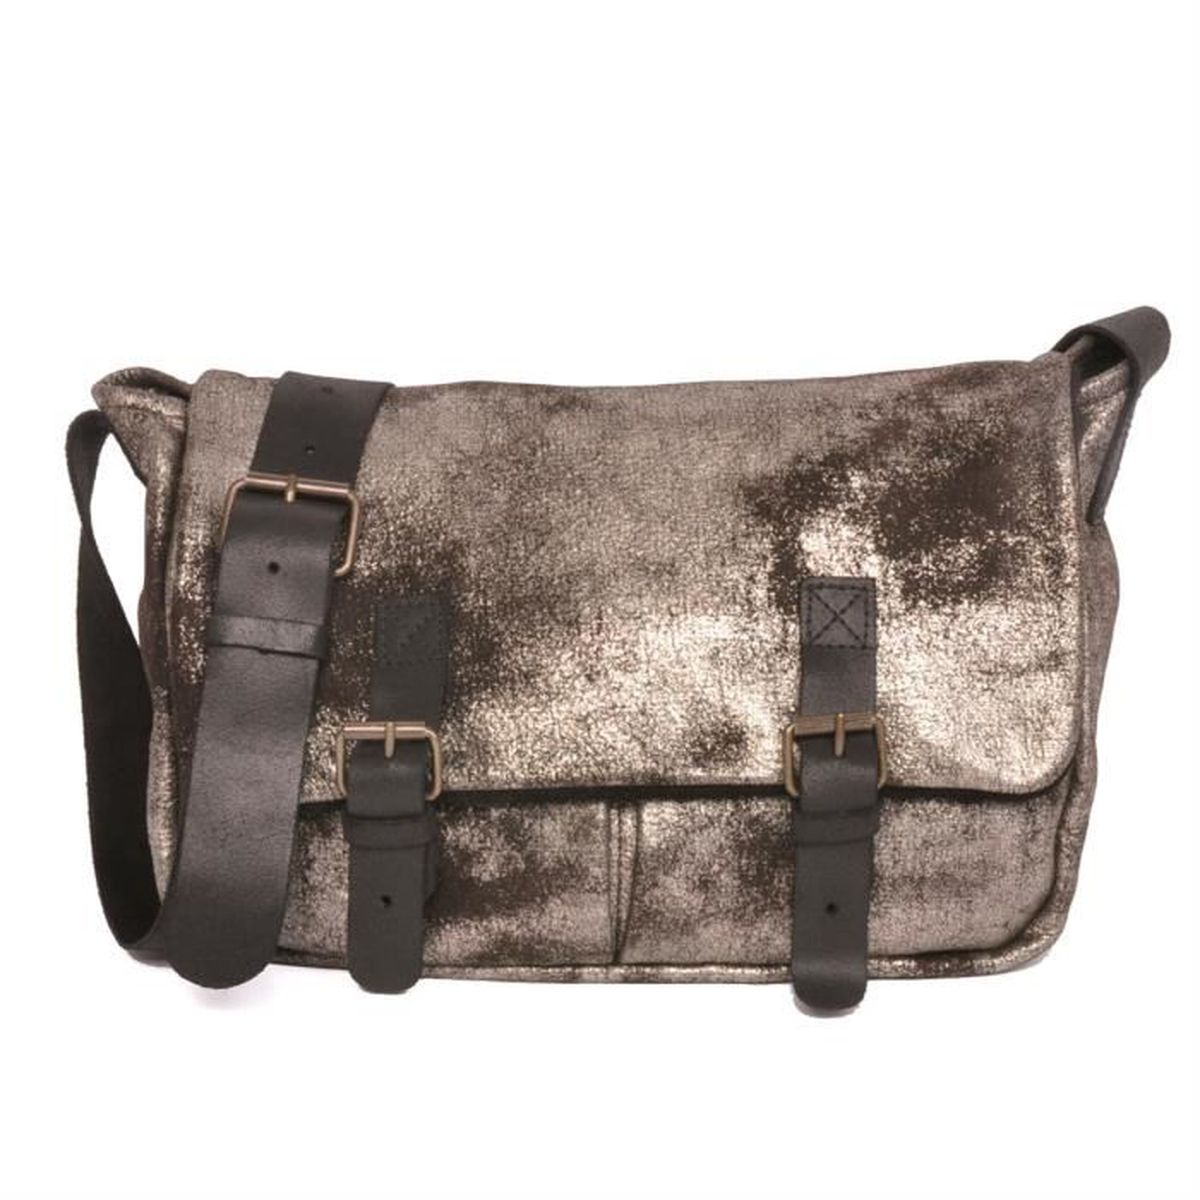 5968ee66f3 BESACE - SAC REPORTER Sac Besace Postier Musette Fabrication Française E